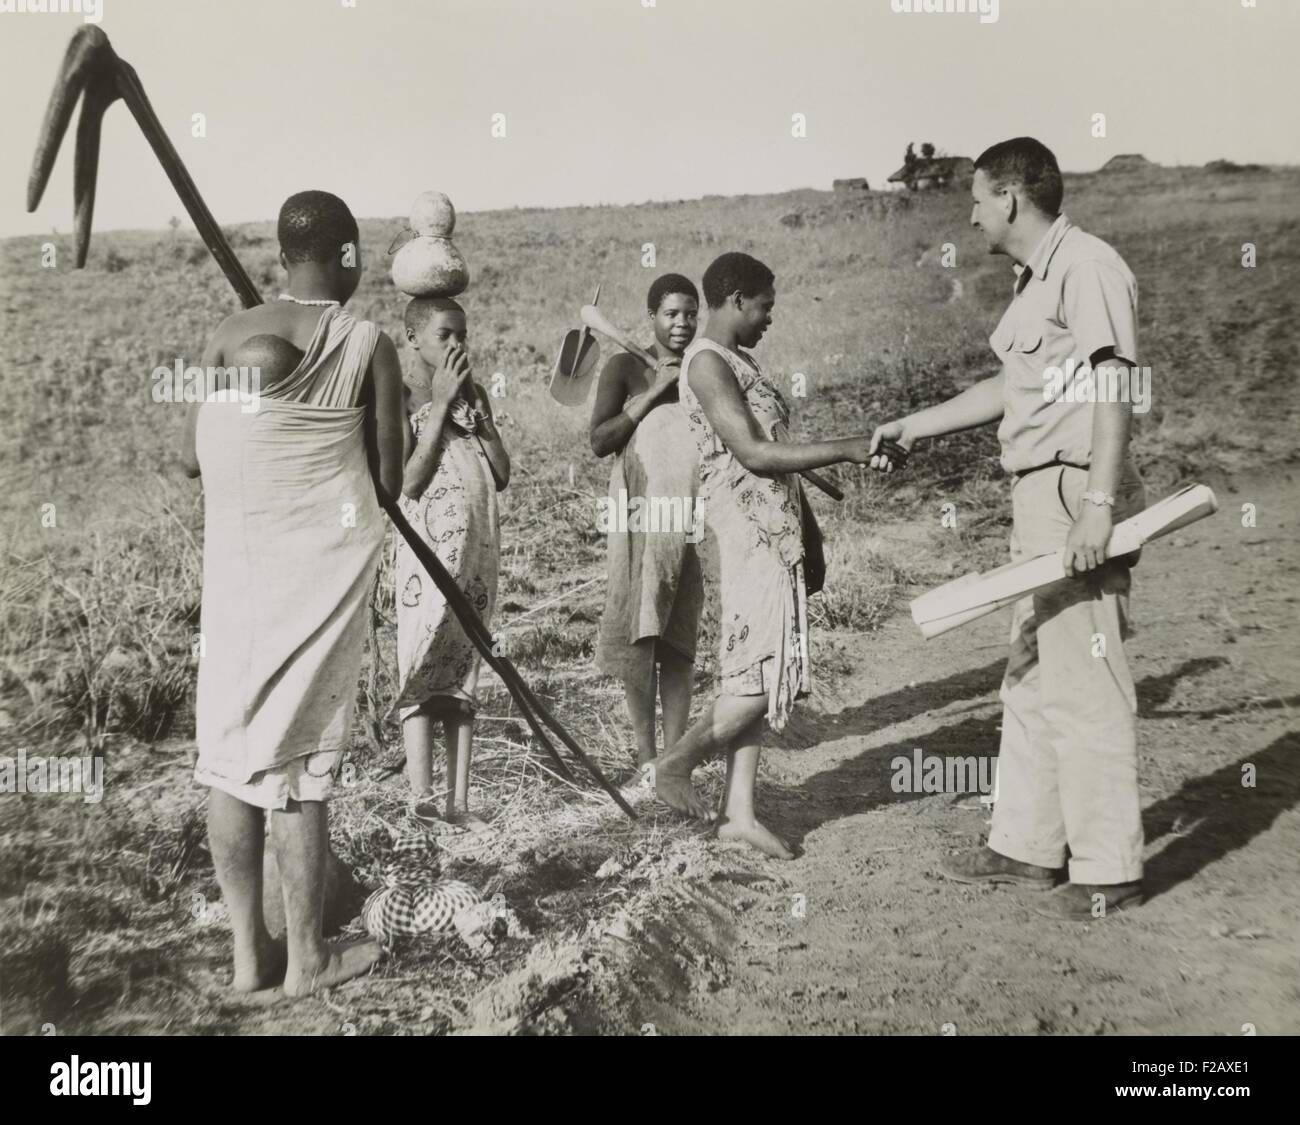 Peace Corps volunteer meeting four village women working in fields, Tanganyika, Oct. 17, 1962. The 1962 Peace Corp - Stock Image